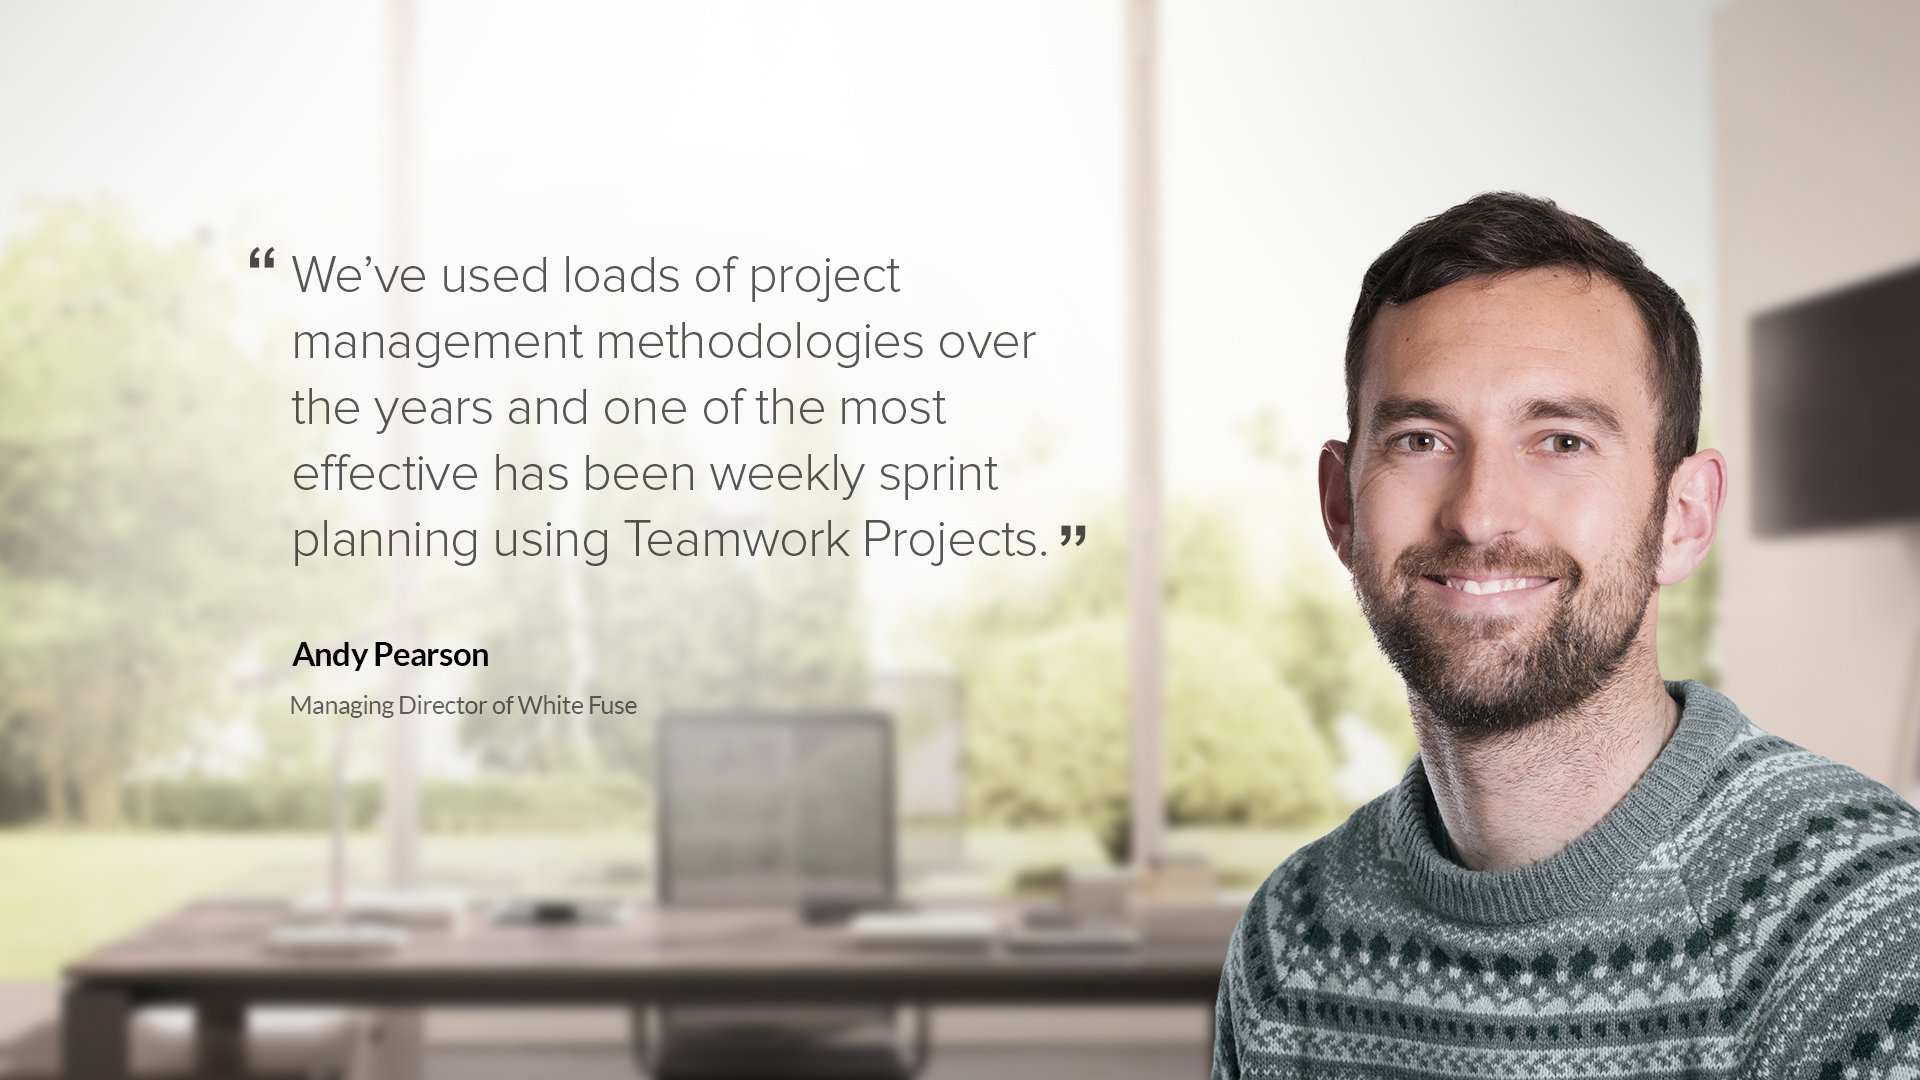 Using Teamwork Projects and Weekly Sprints to Get Things Done | Teamwork.com High Performance Blog